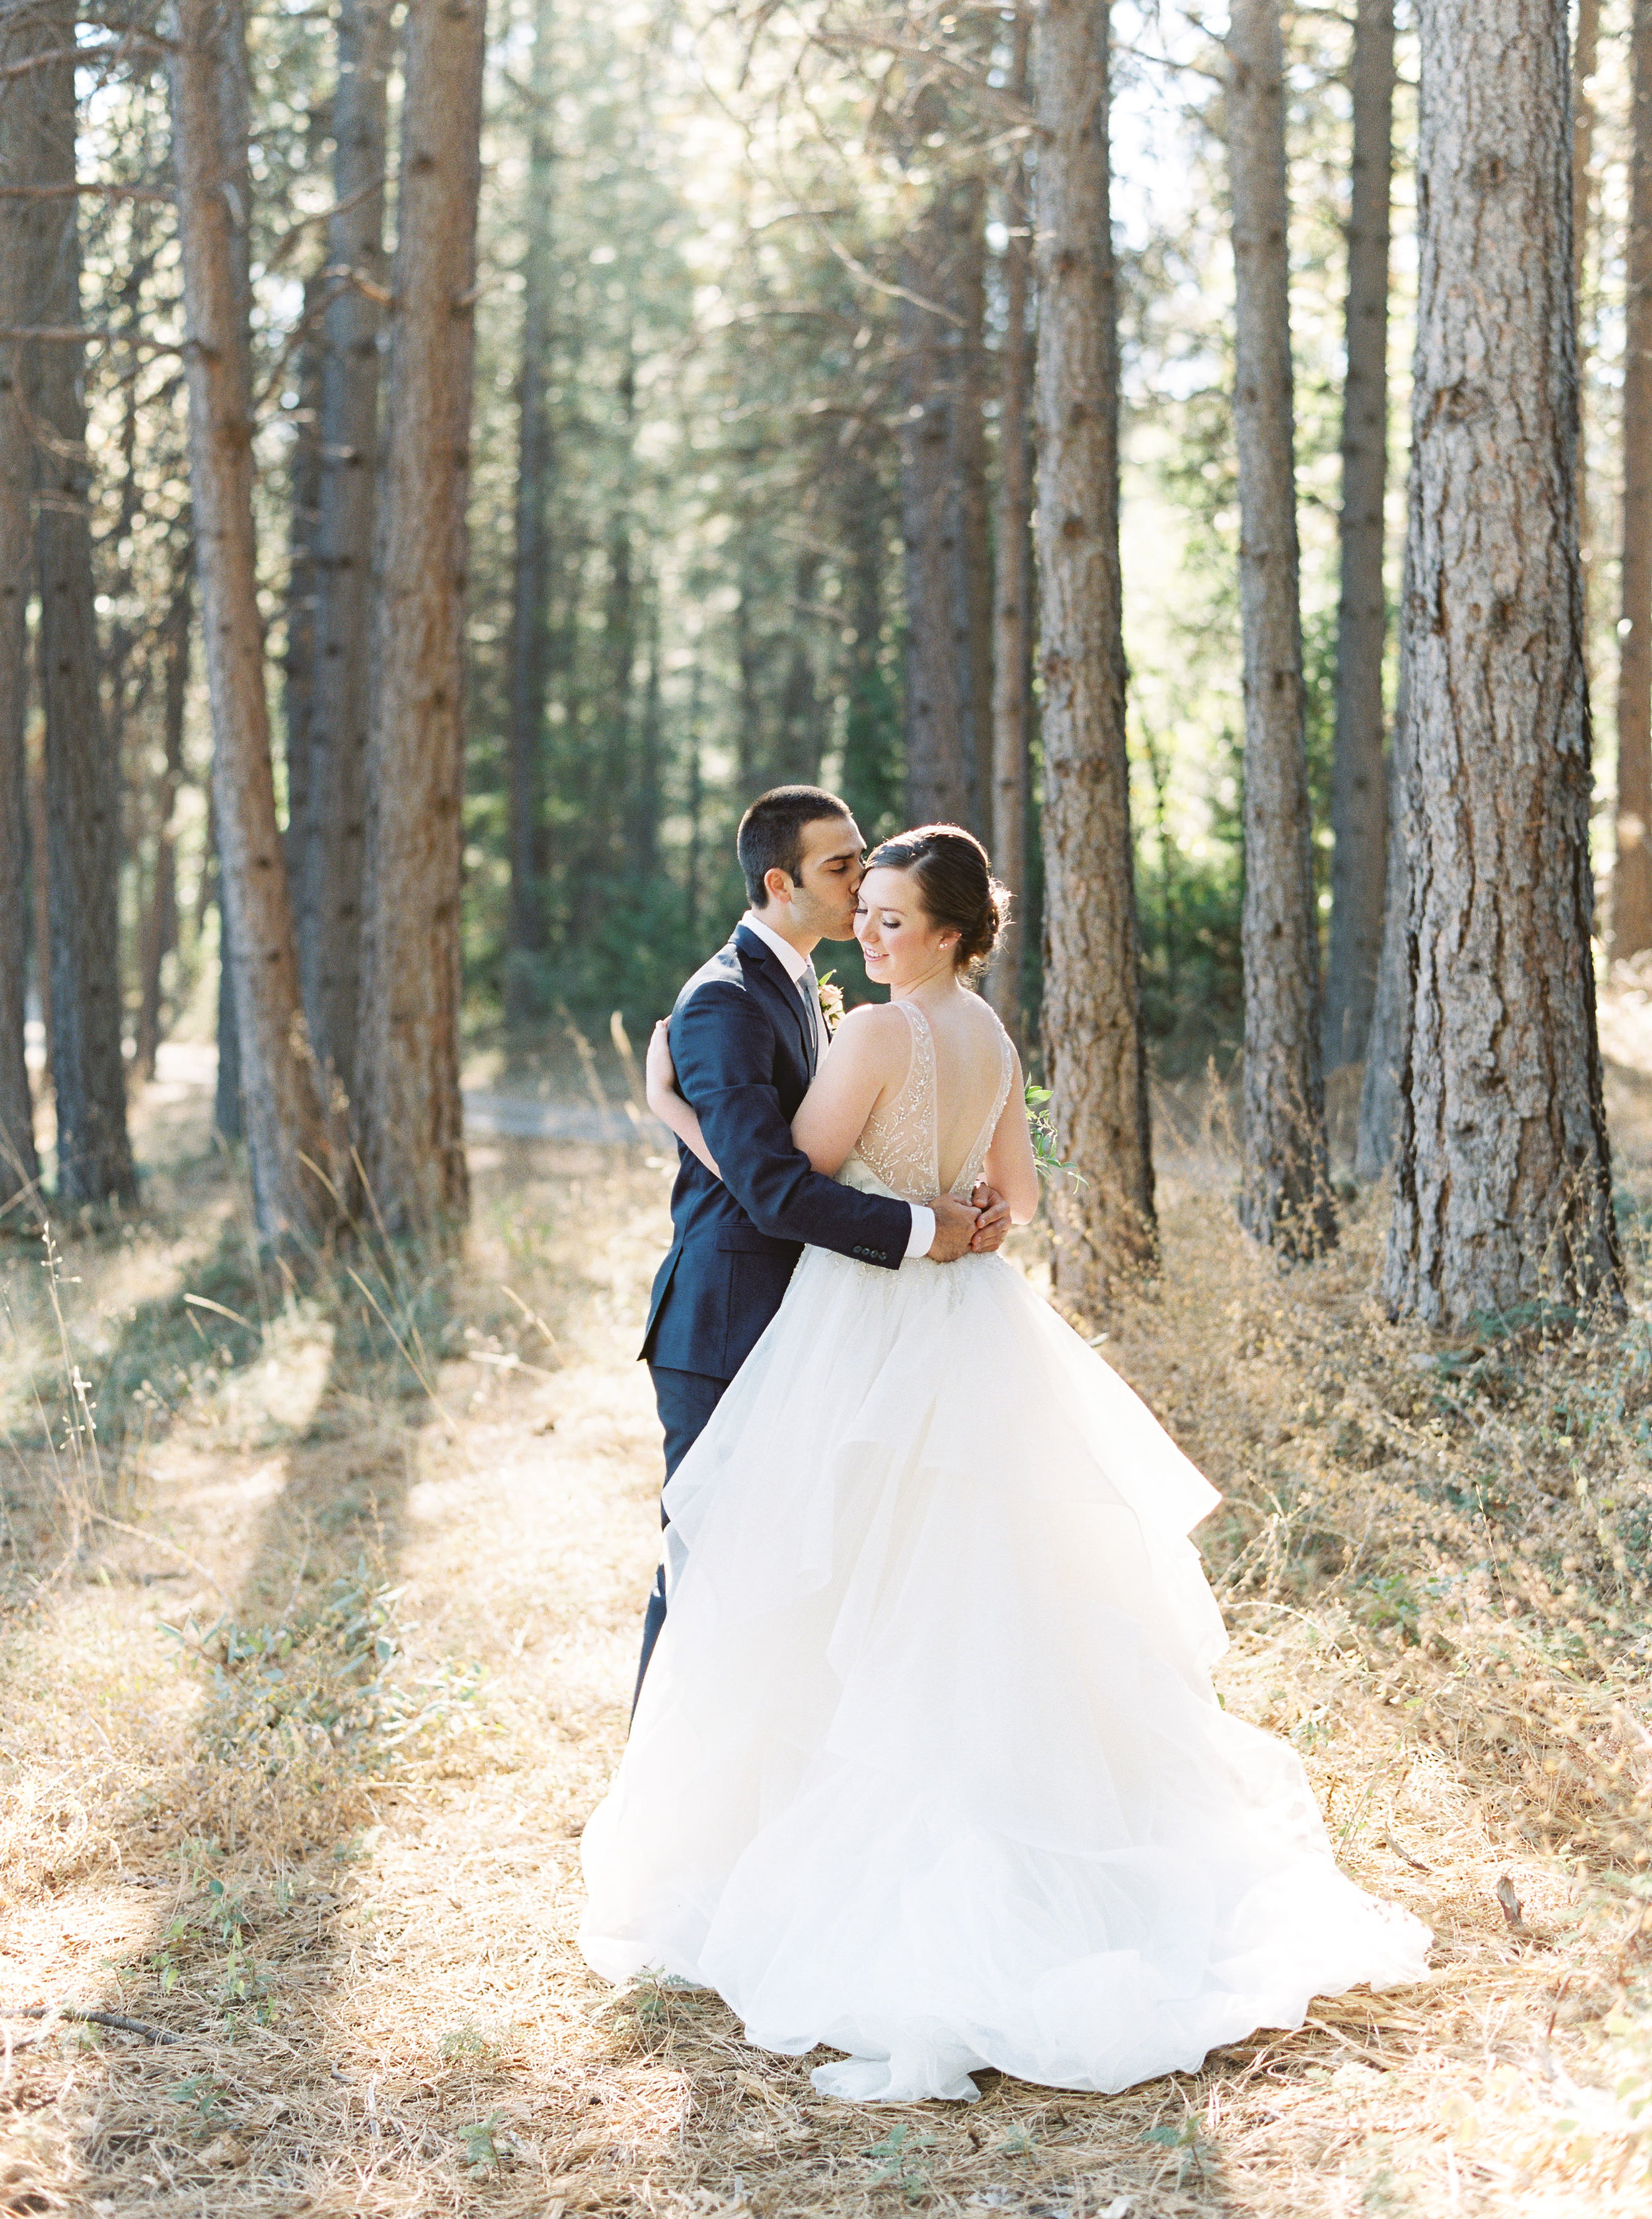 Forest-house-lodge-wedding-foresthill-california-50.jpg